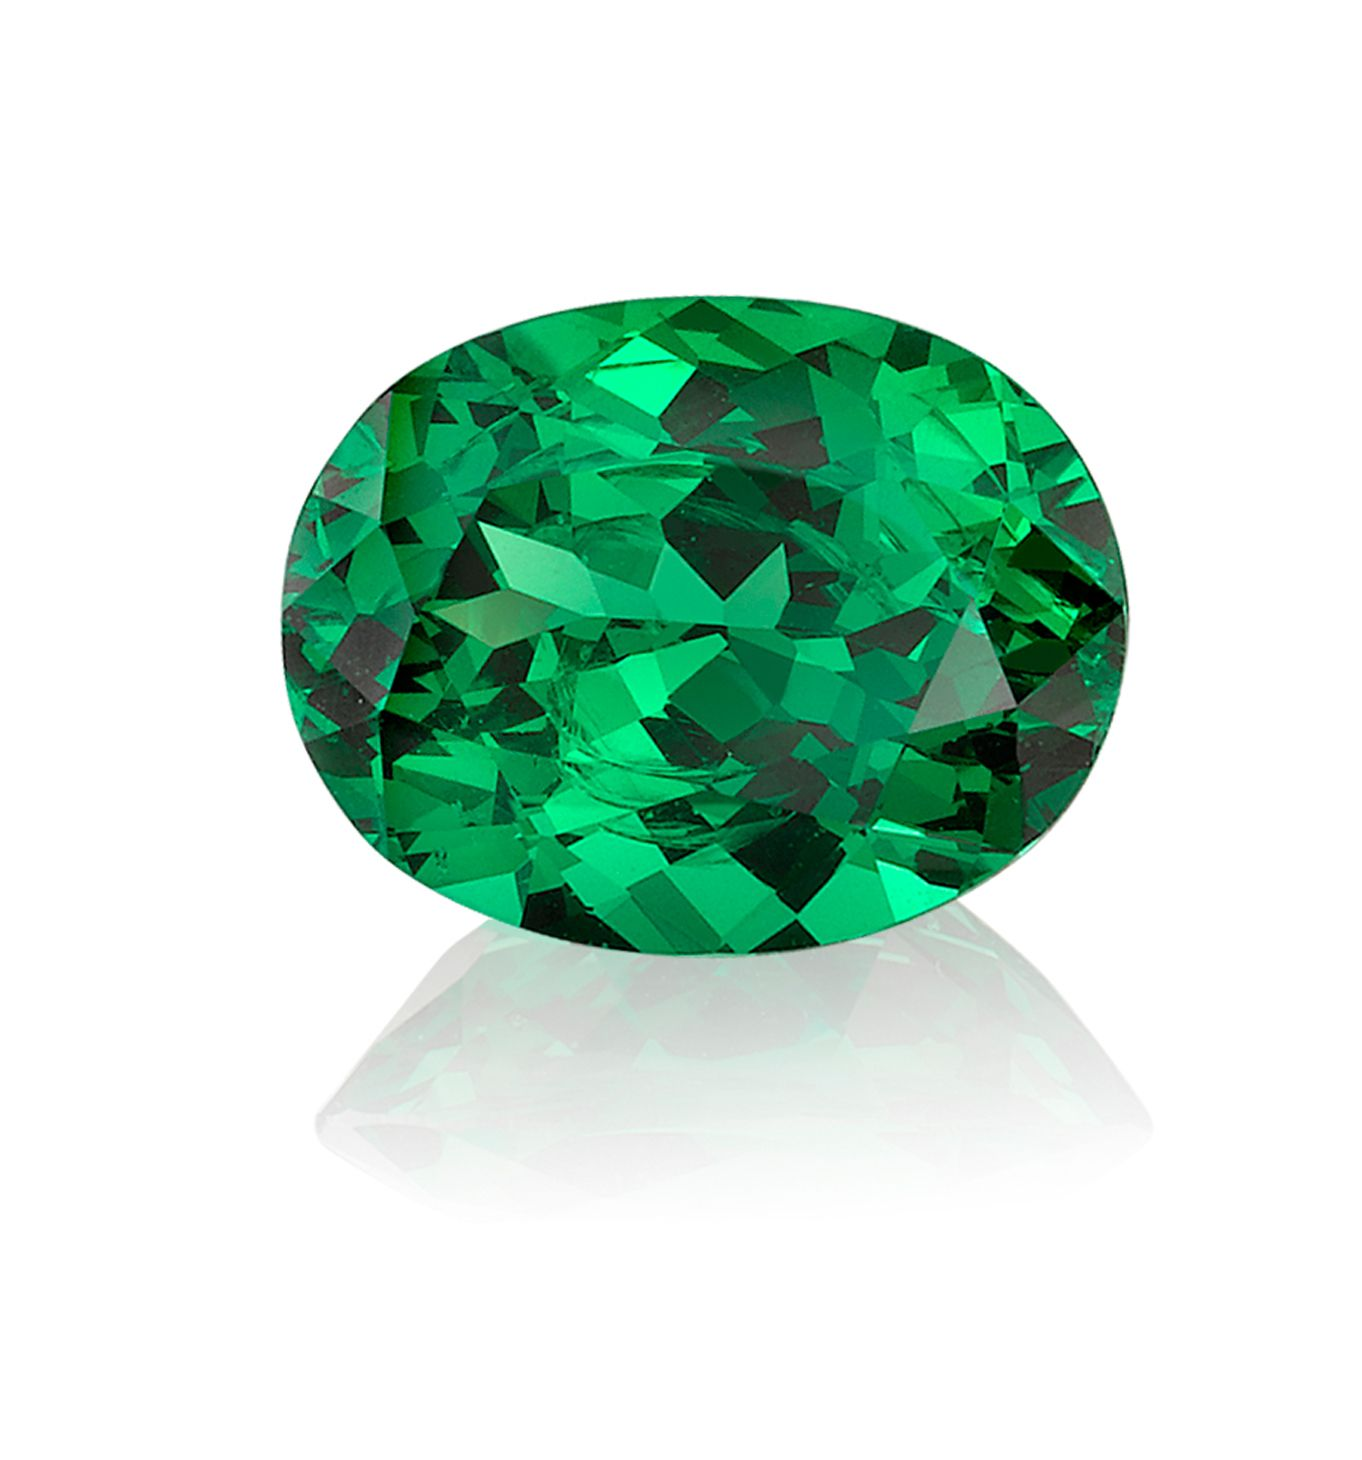 tsavorite unheated natural new gemstonenew gemstone carats garnet loose sri lanka